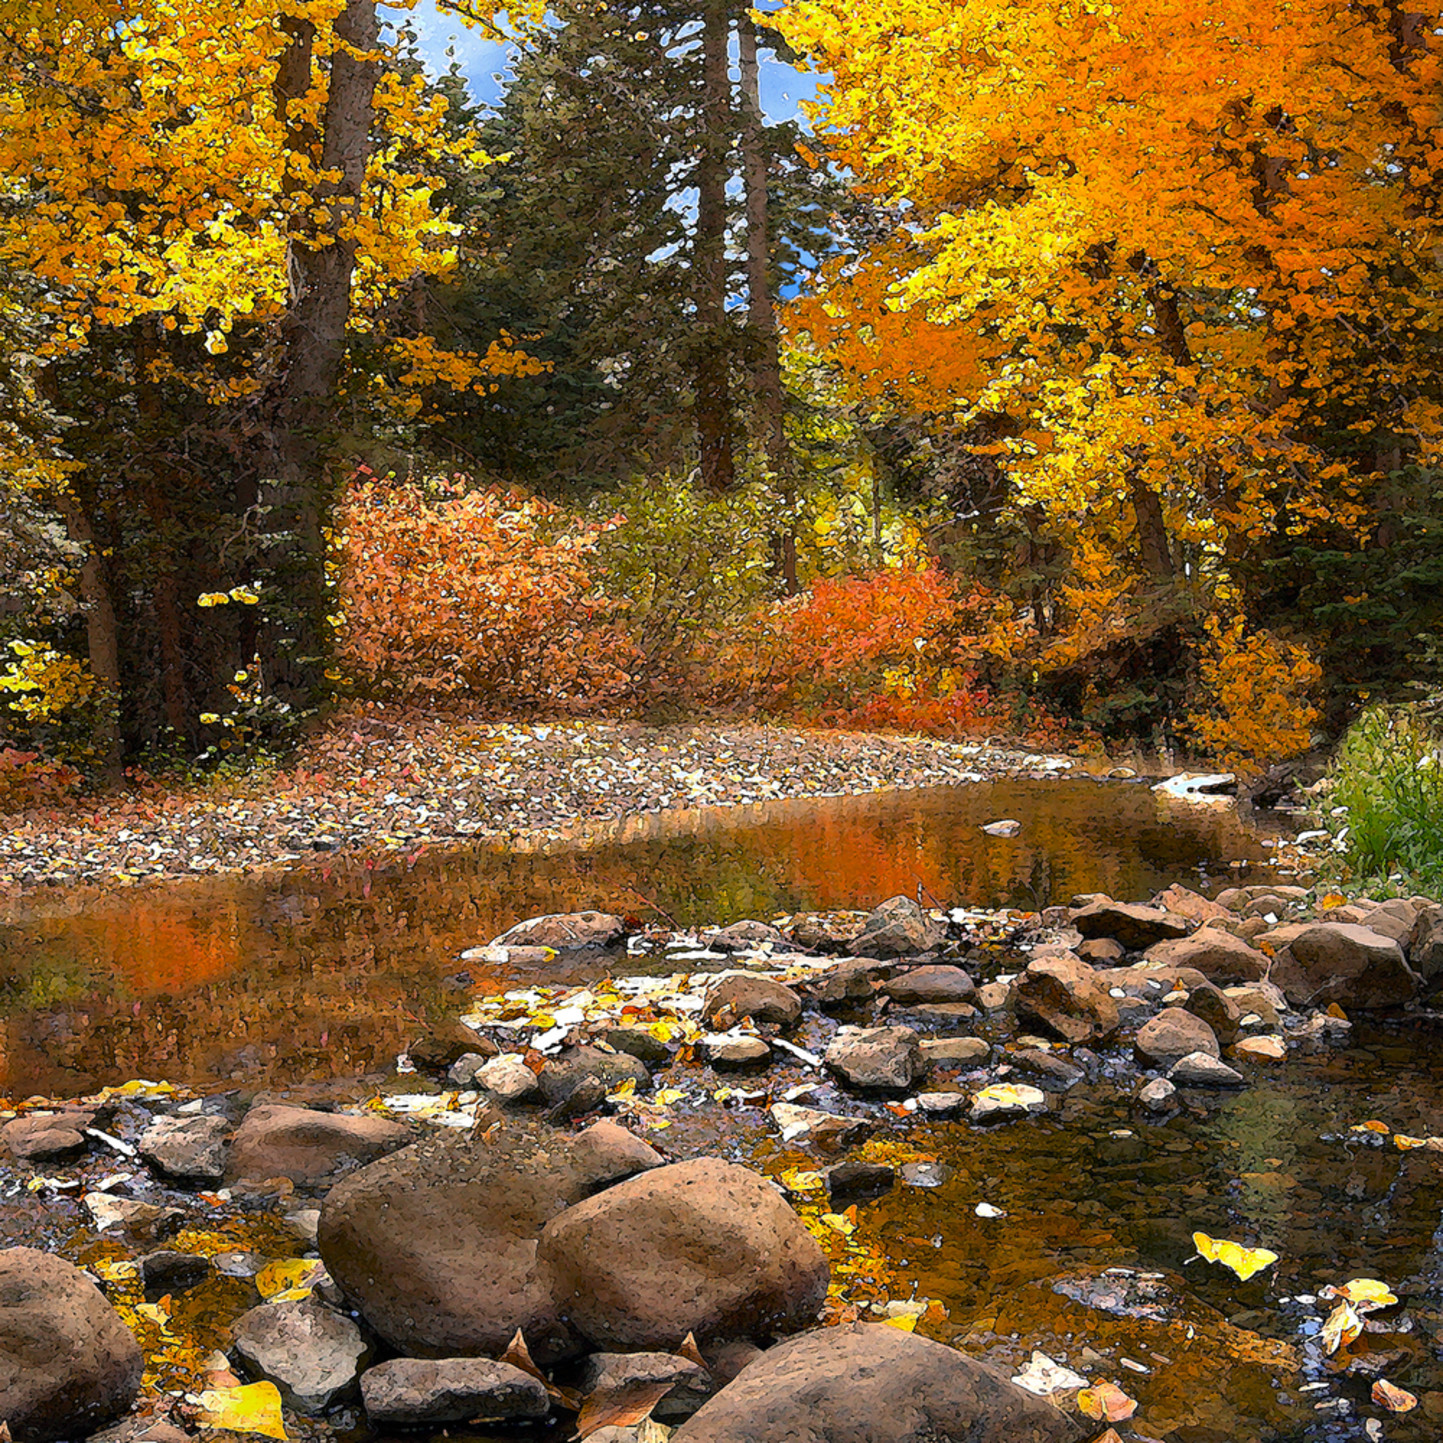 Blackwood creek autumn v7qwr8